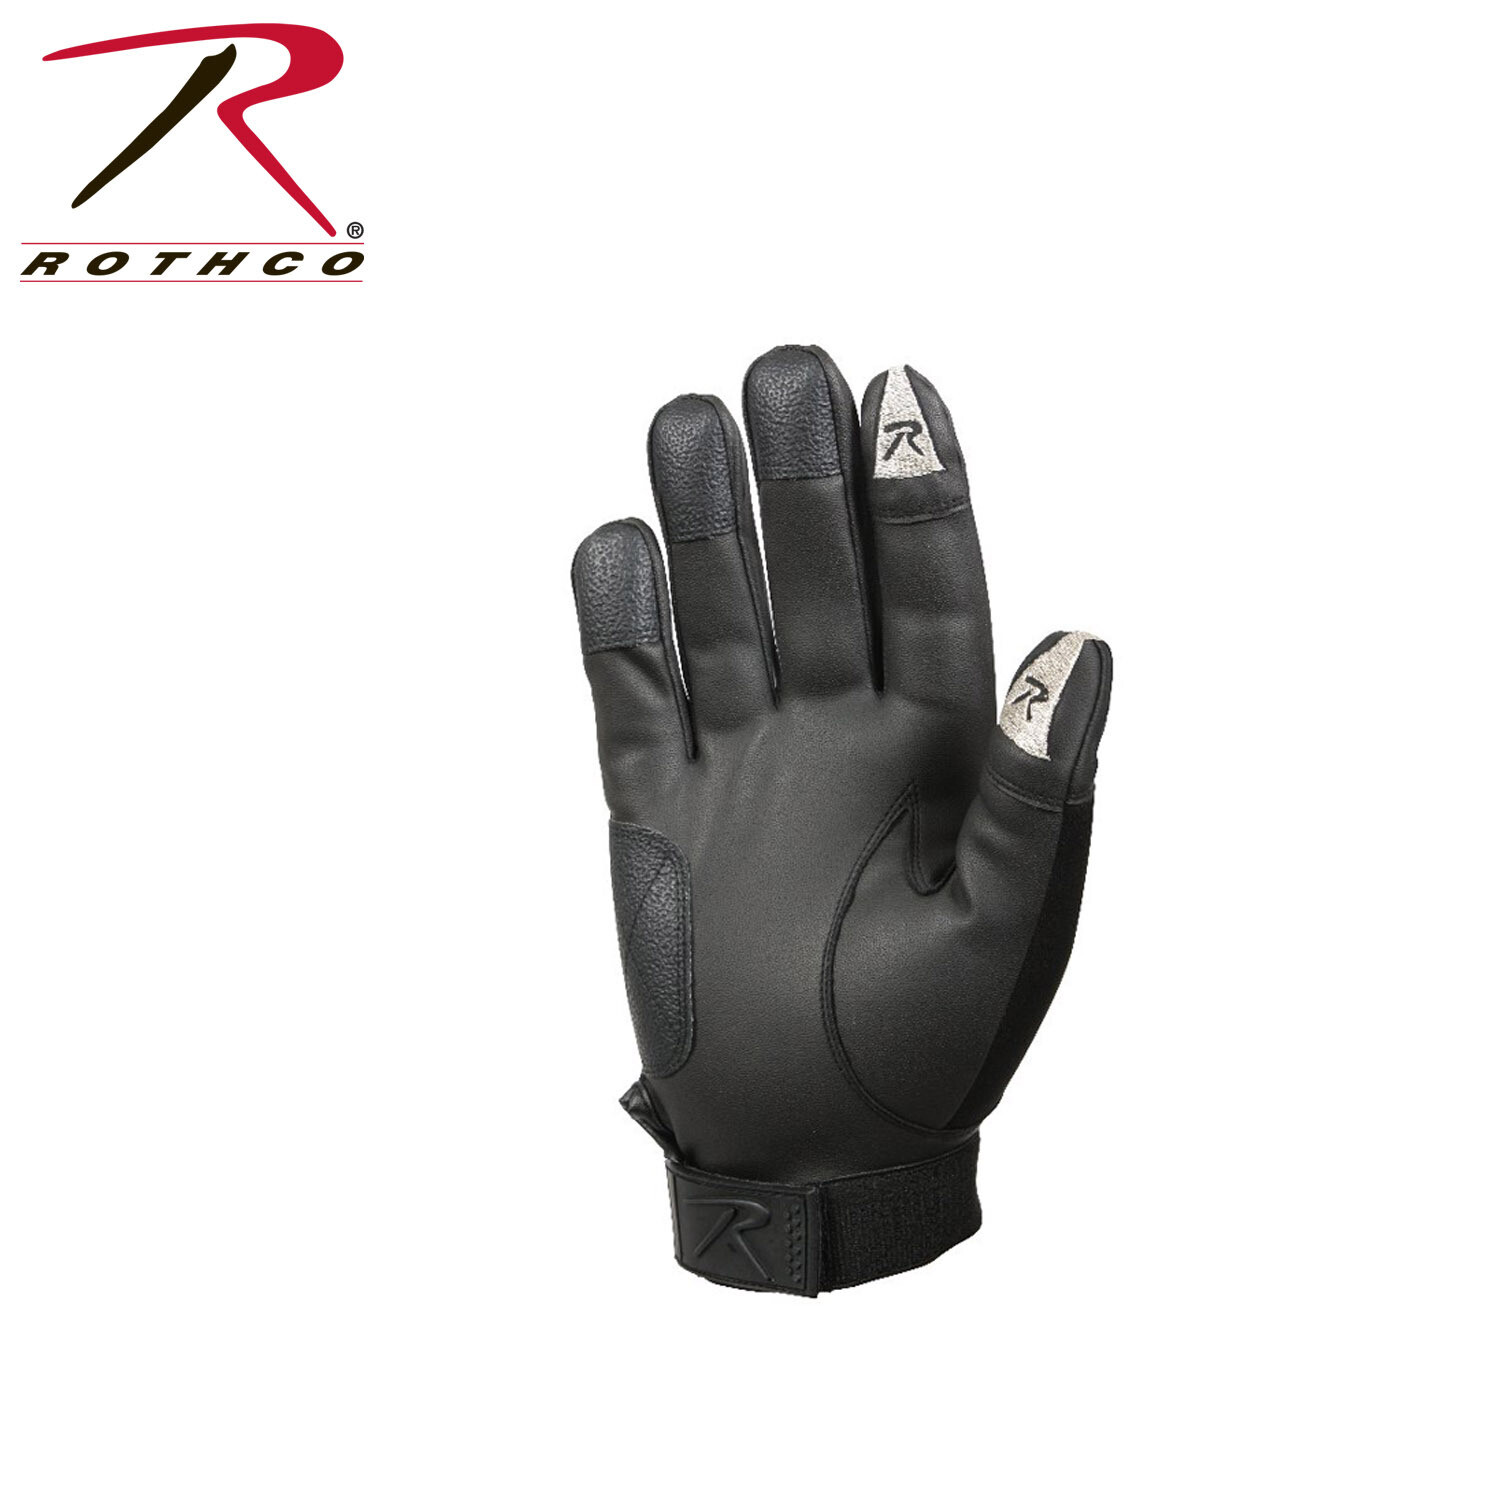 Rothco, 3409, Rothco Black Touch Screen Neoprene Duty Gloves